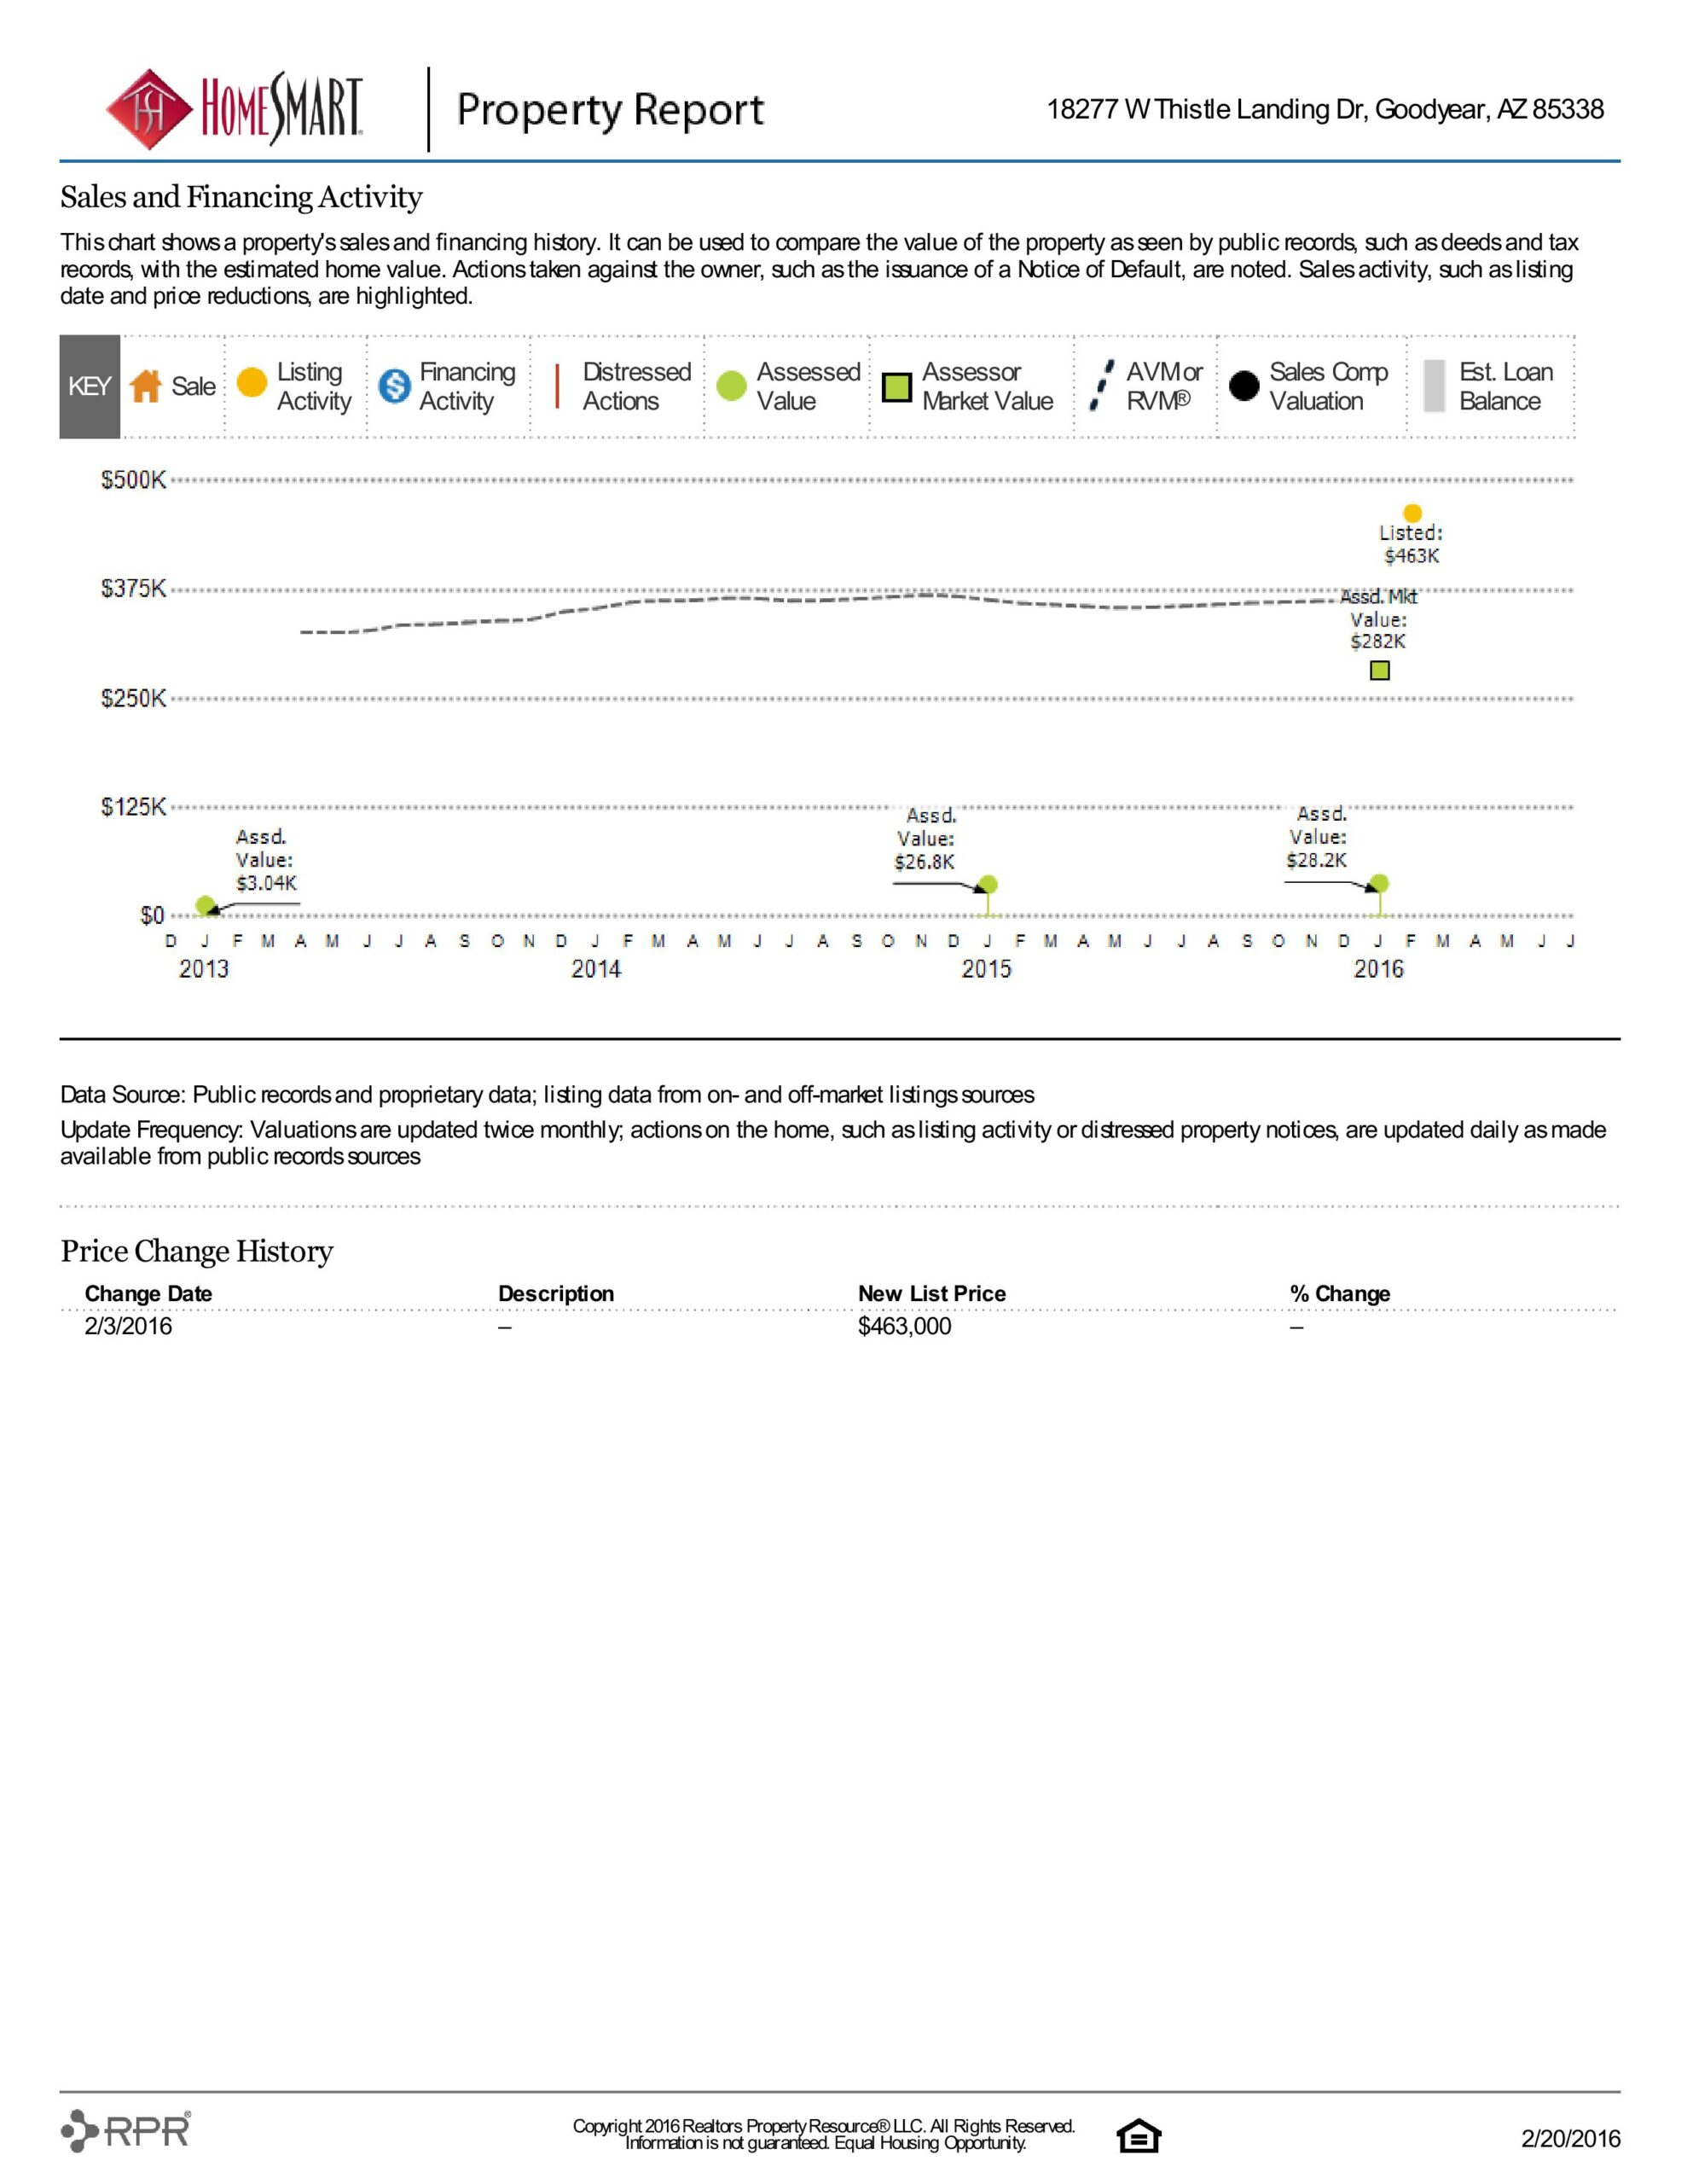 18277 W THISTLE LANDING DR PROPERTY REPORT-page-010